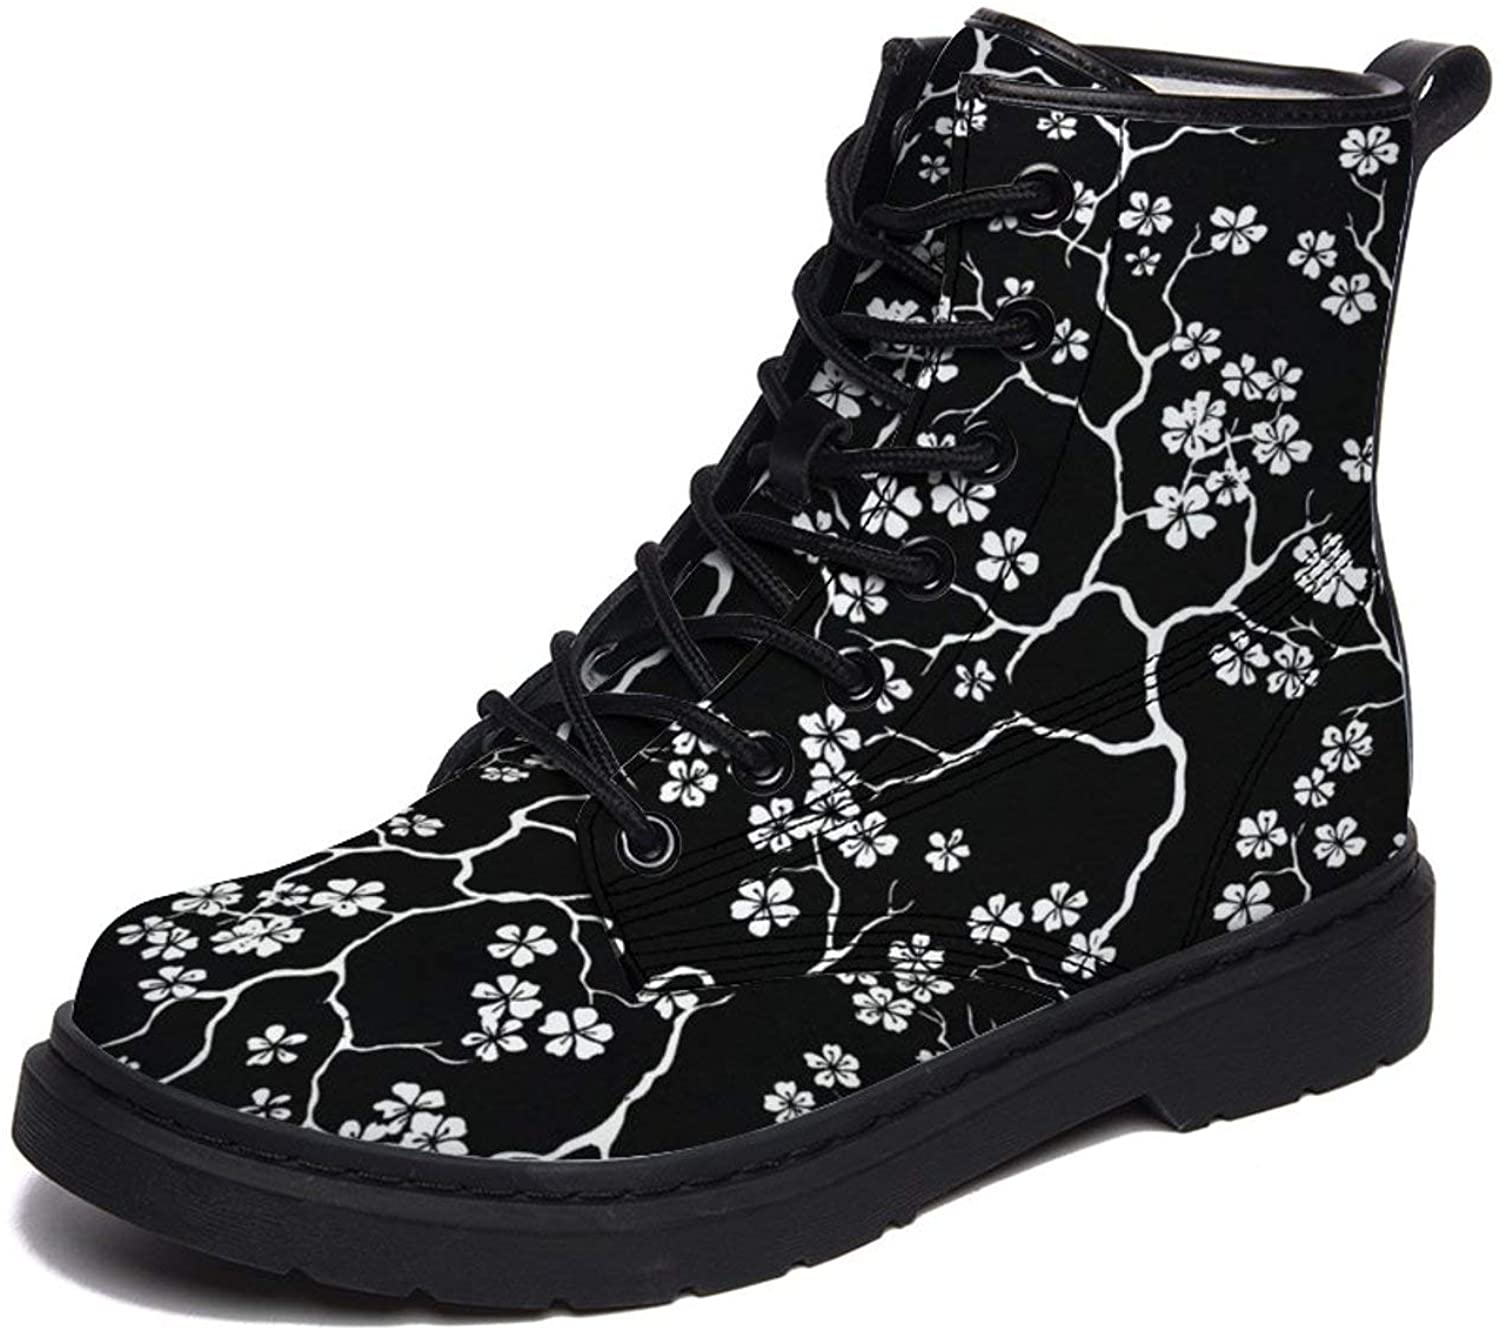 Cherry Blossoms Floral Black Men's Snow Boot Fur Lined Ankle Booties Waterproof Walking Shoes for Men Women